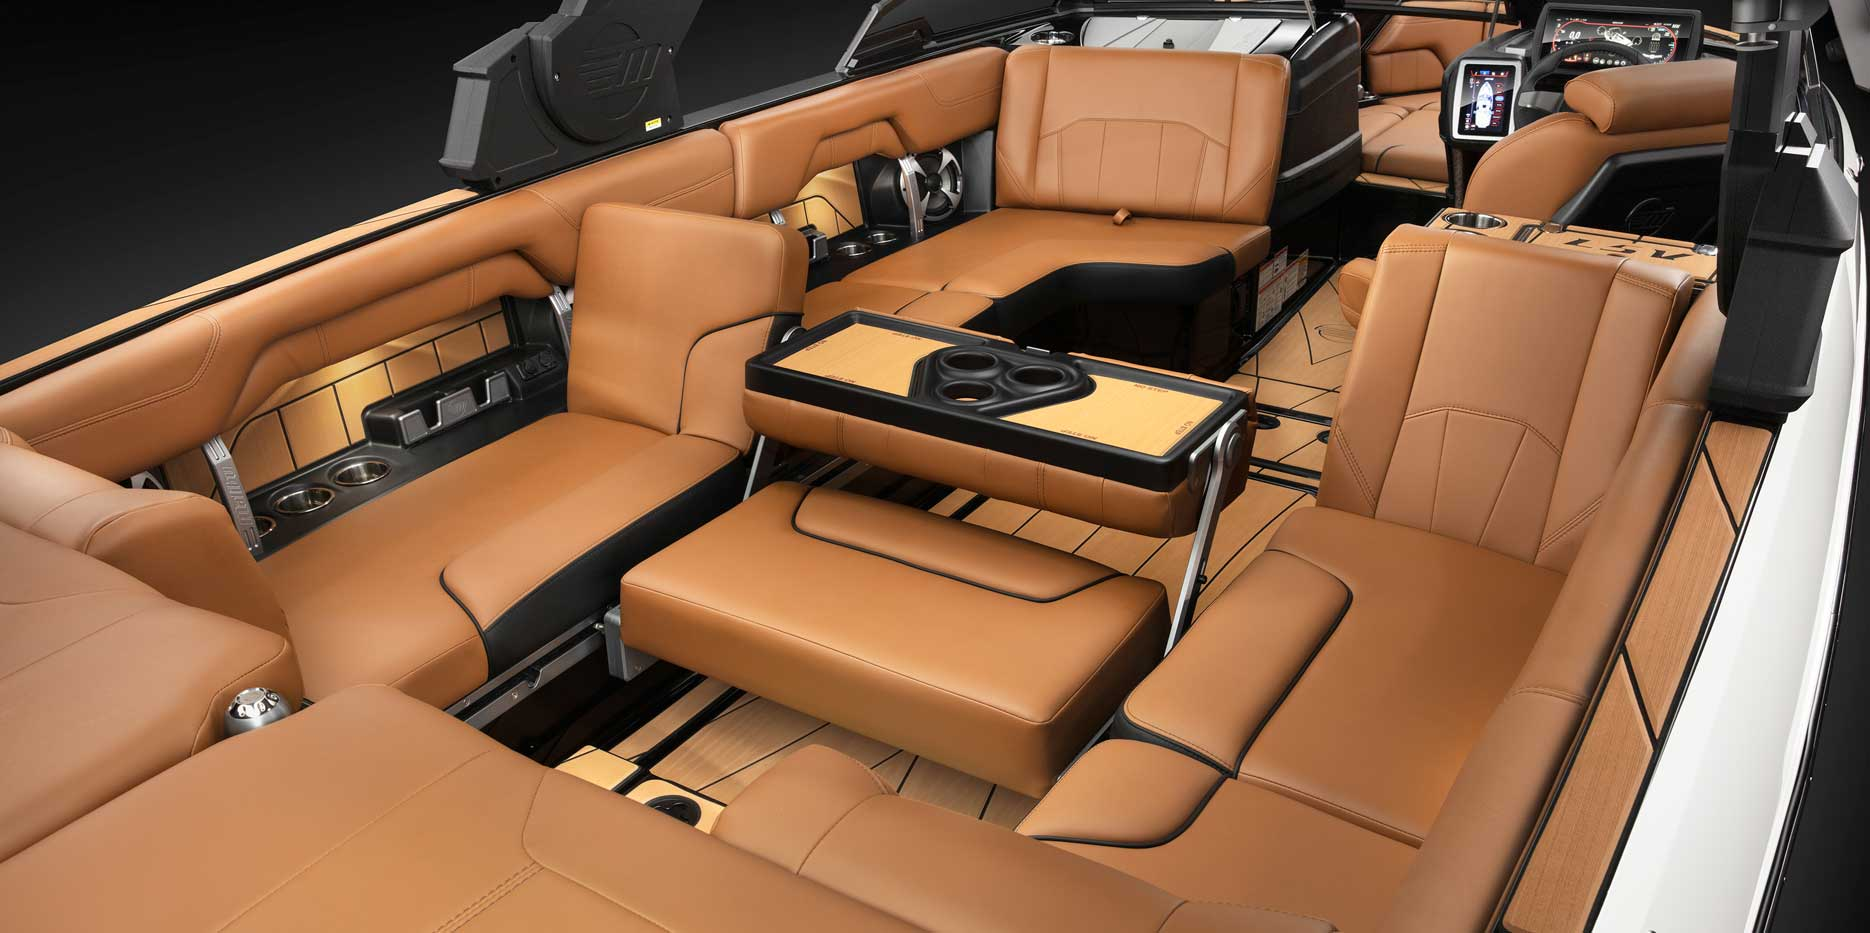 Wakeview Seats and the Multi-View Bench Seat in the 25 LSV